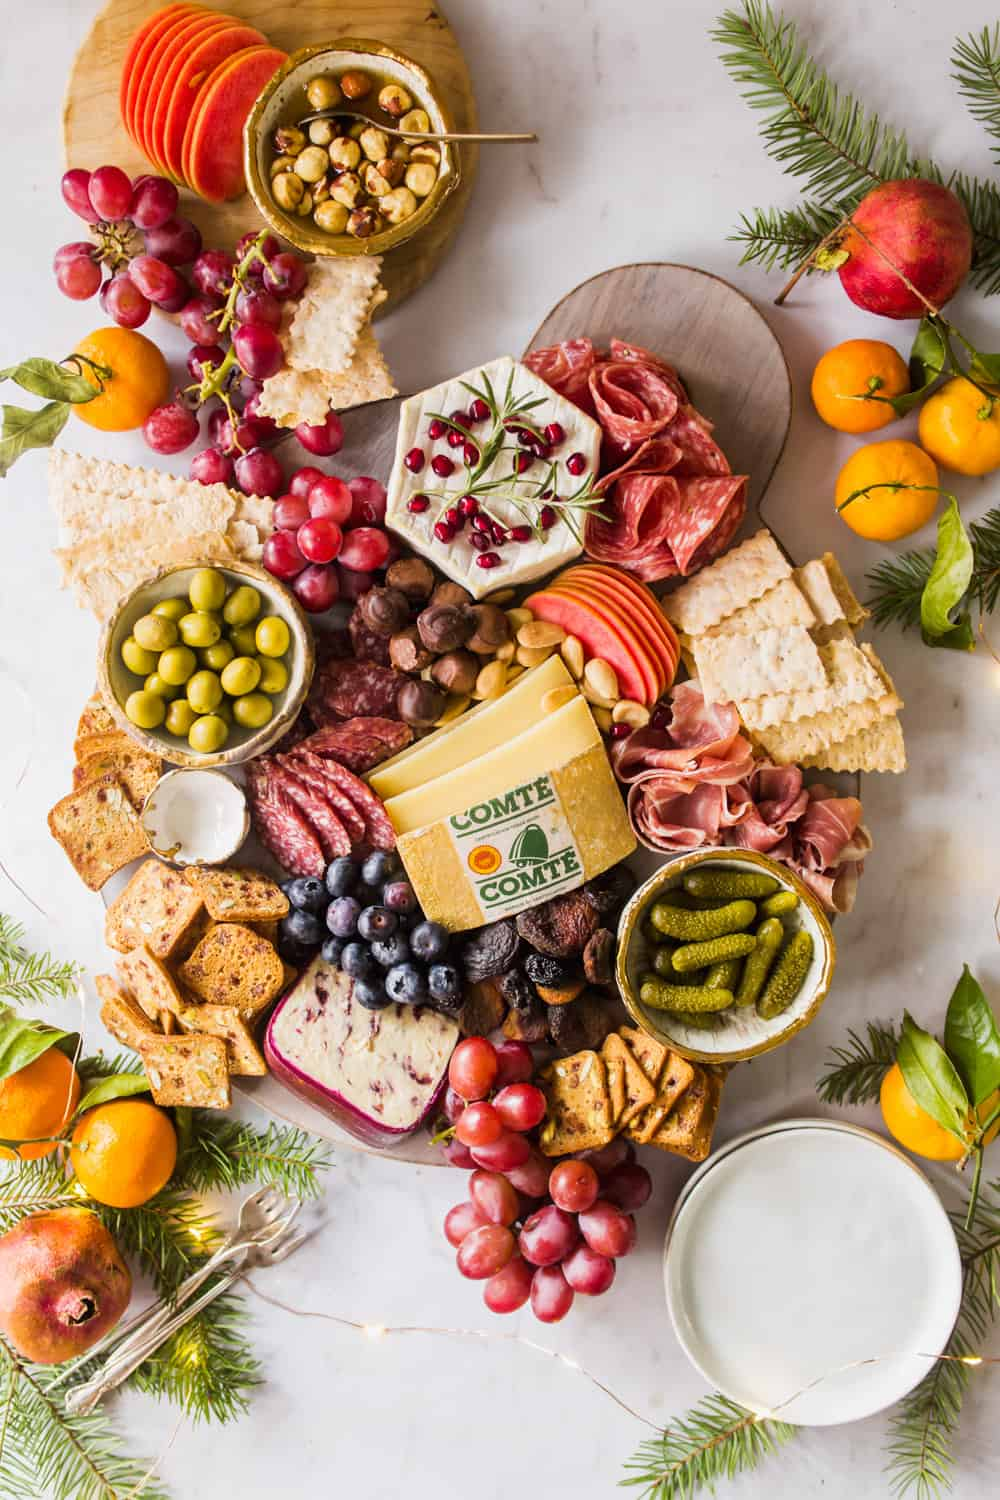 Overhead view of a large platter layered in cheese, meat, crackers, fruit, pickles, olives, and berries.